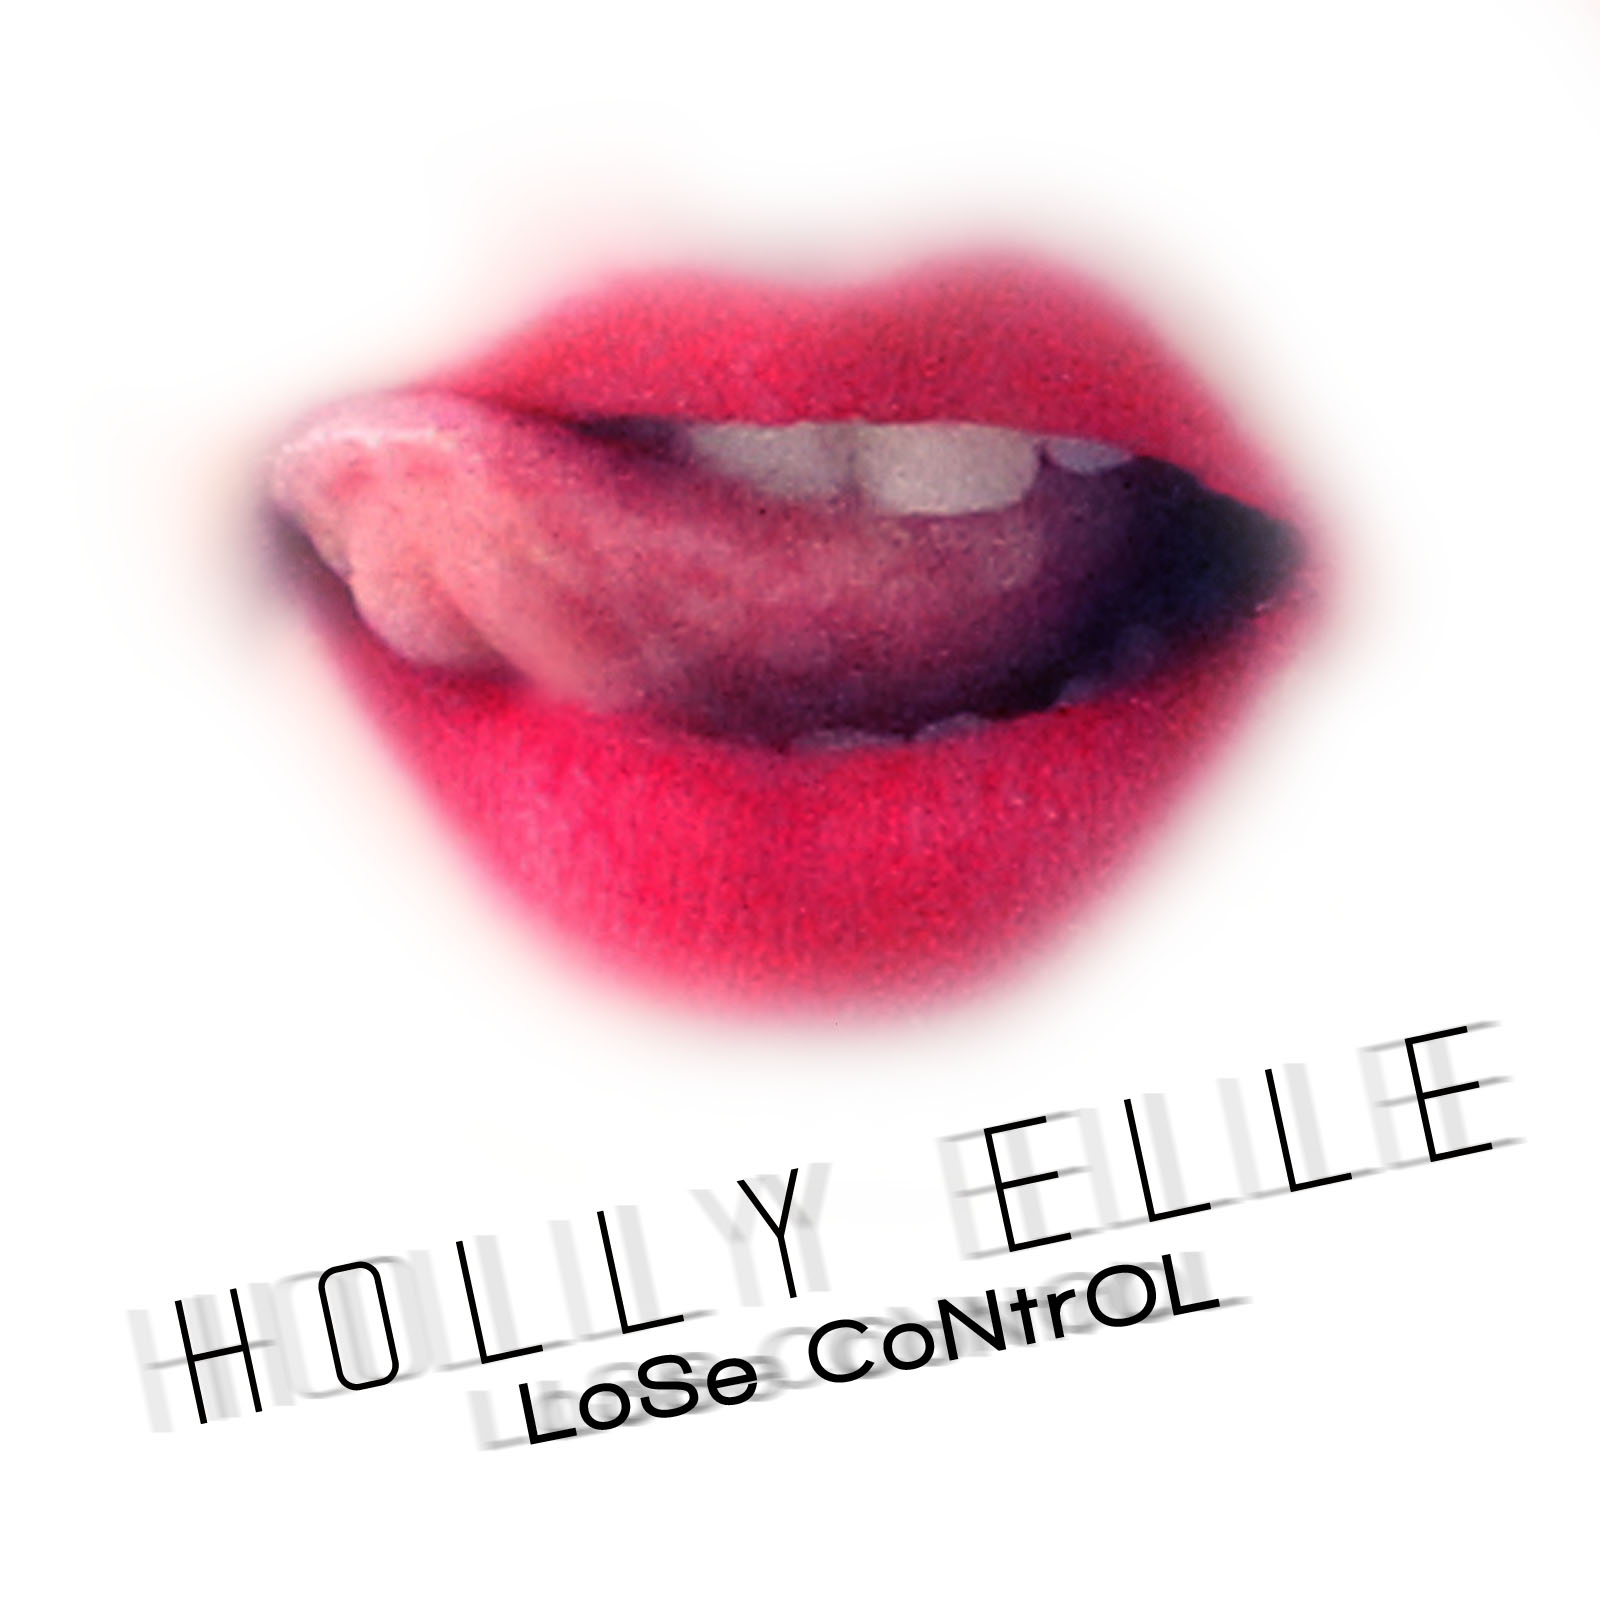 Holly Elle Releases New Single